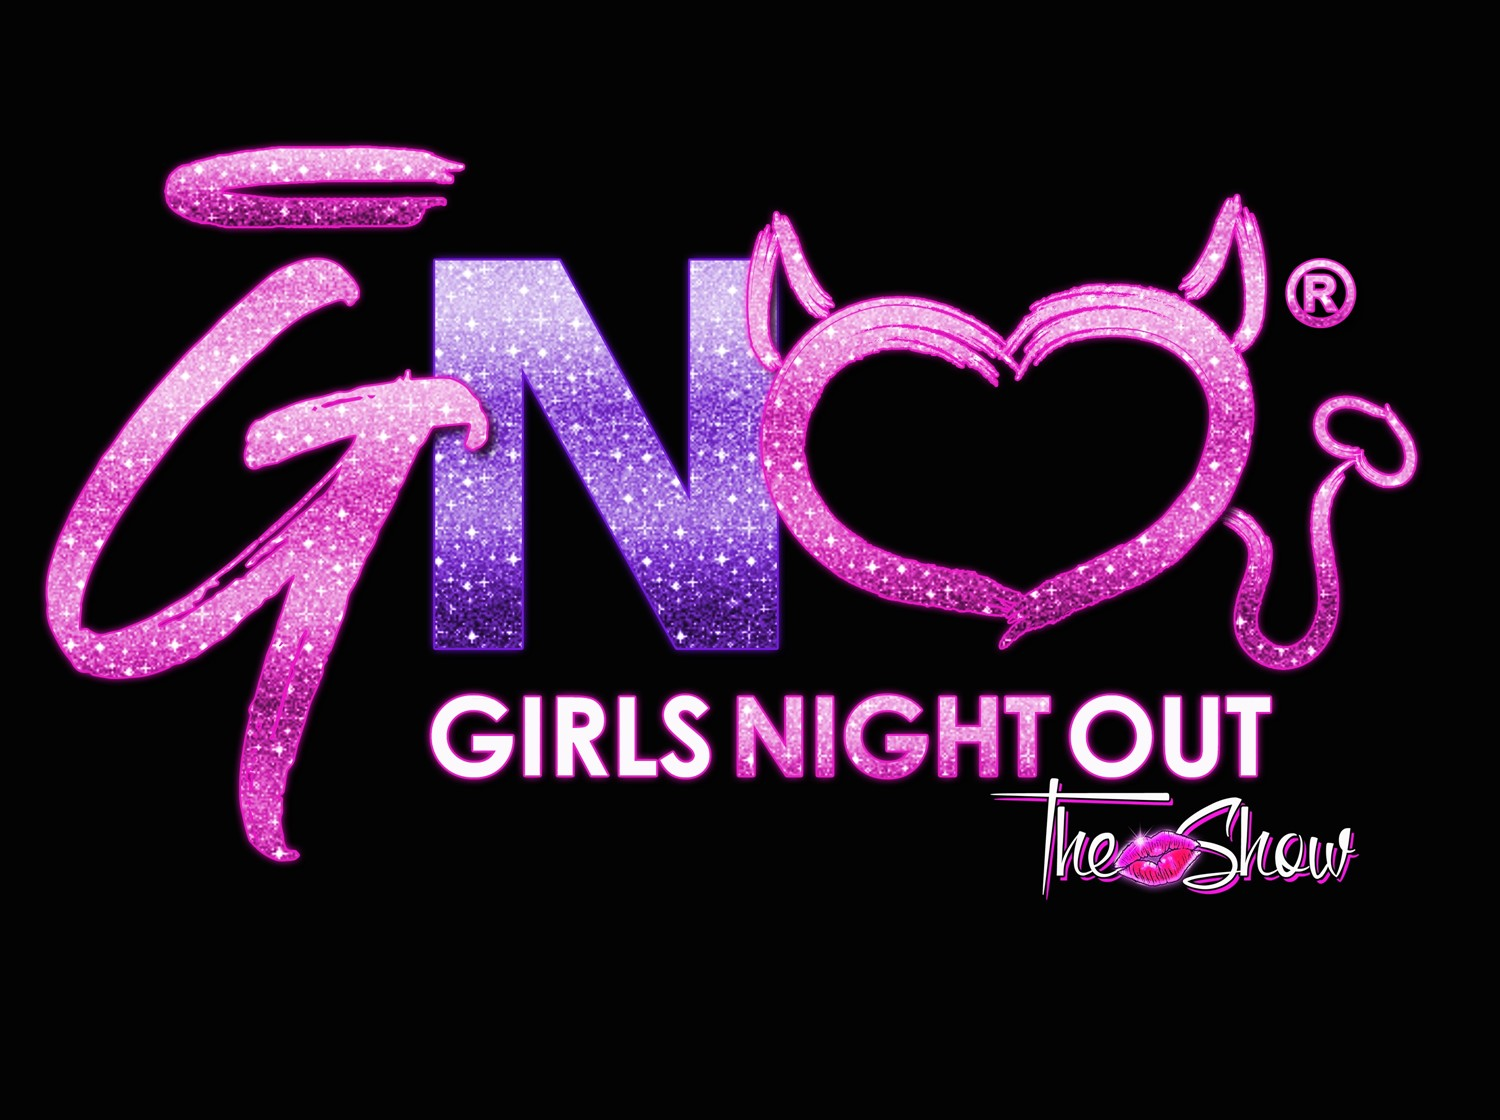 ZimMarss Showbar (21+) Terre Haute, IN on abr. 24, 20:00@ZimMarss Showbar - Buy tickets and Get information on Girls Night Out the Show tickets.girlsnightouttheshow.com